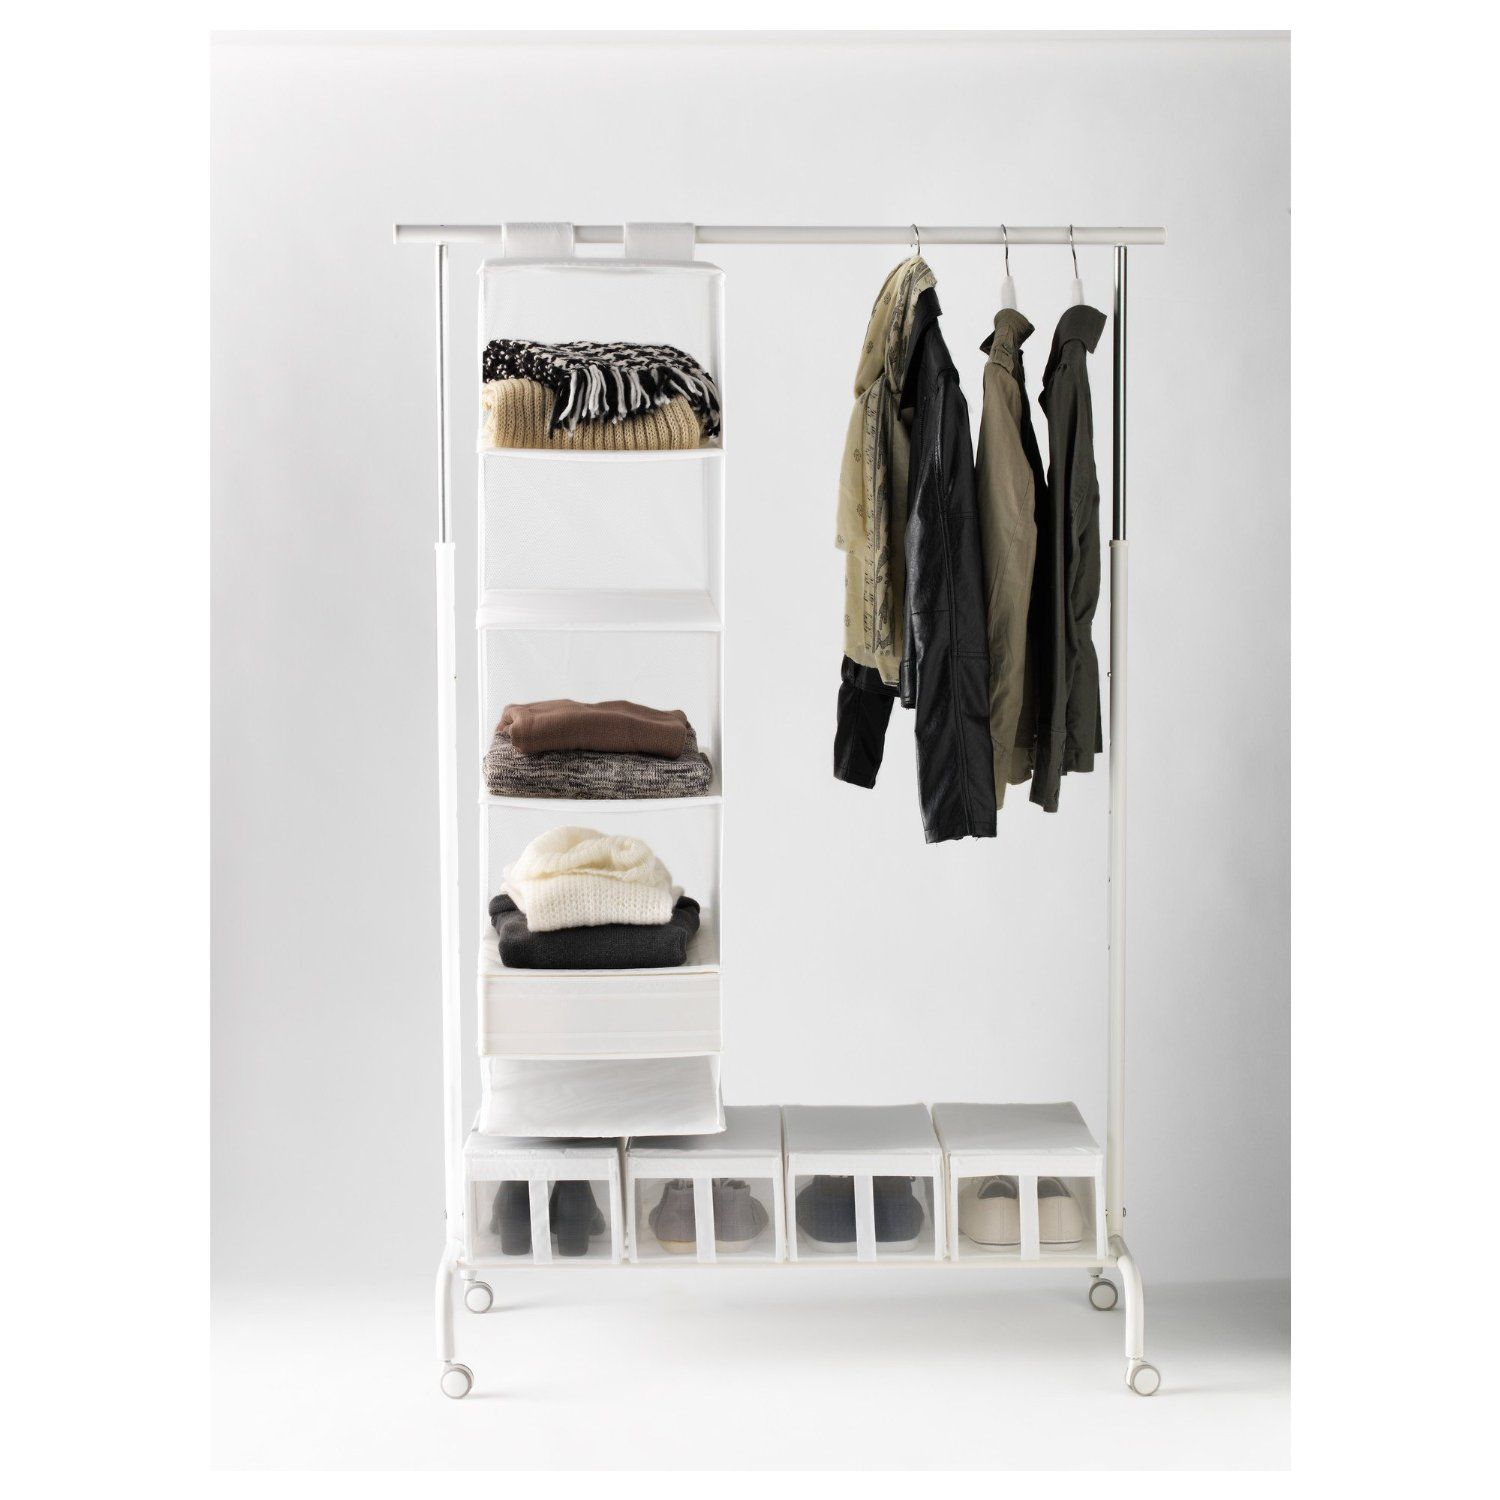 Amazon.com: Ikea Rigga Clothes Rack: Storage & Organization